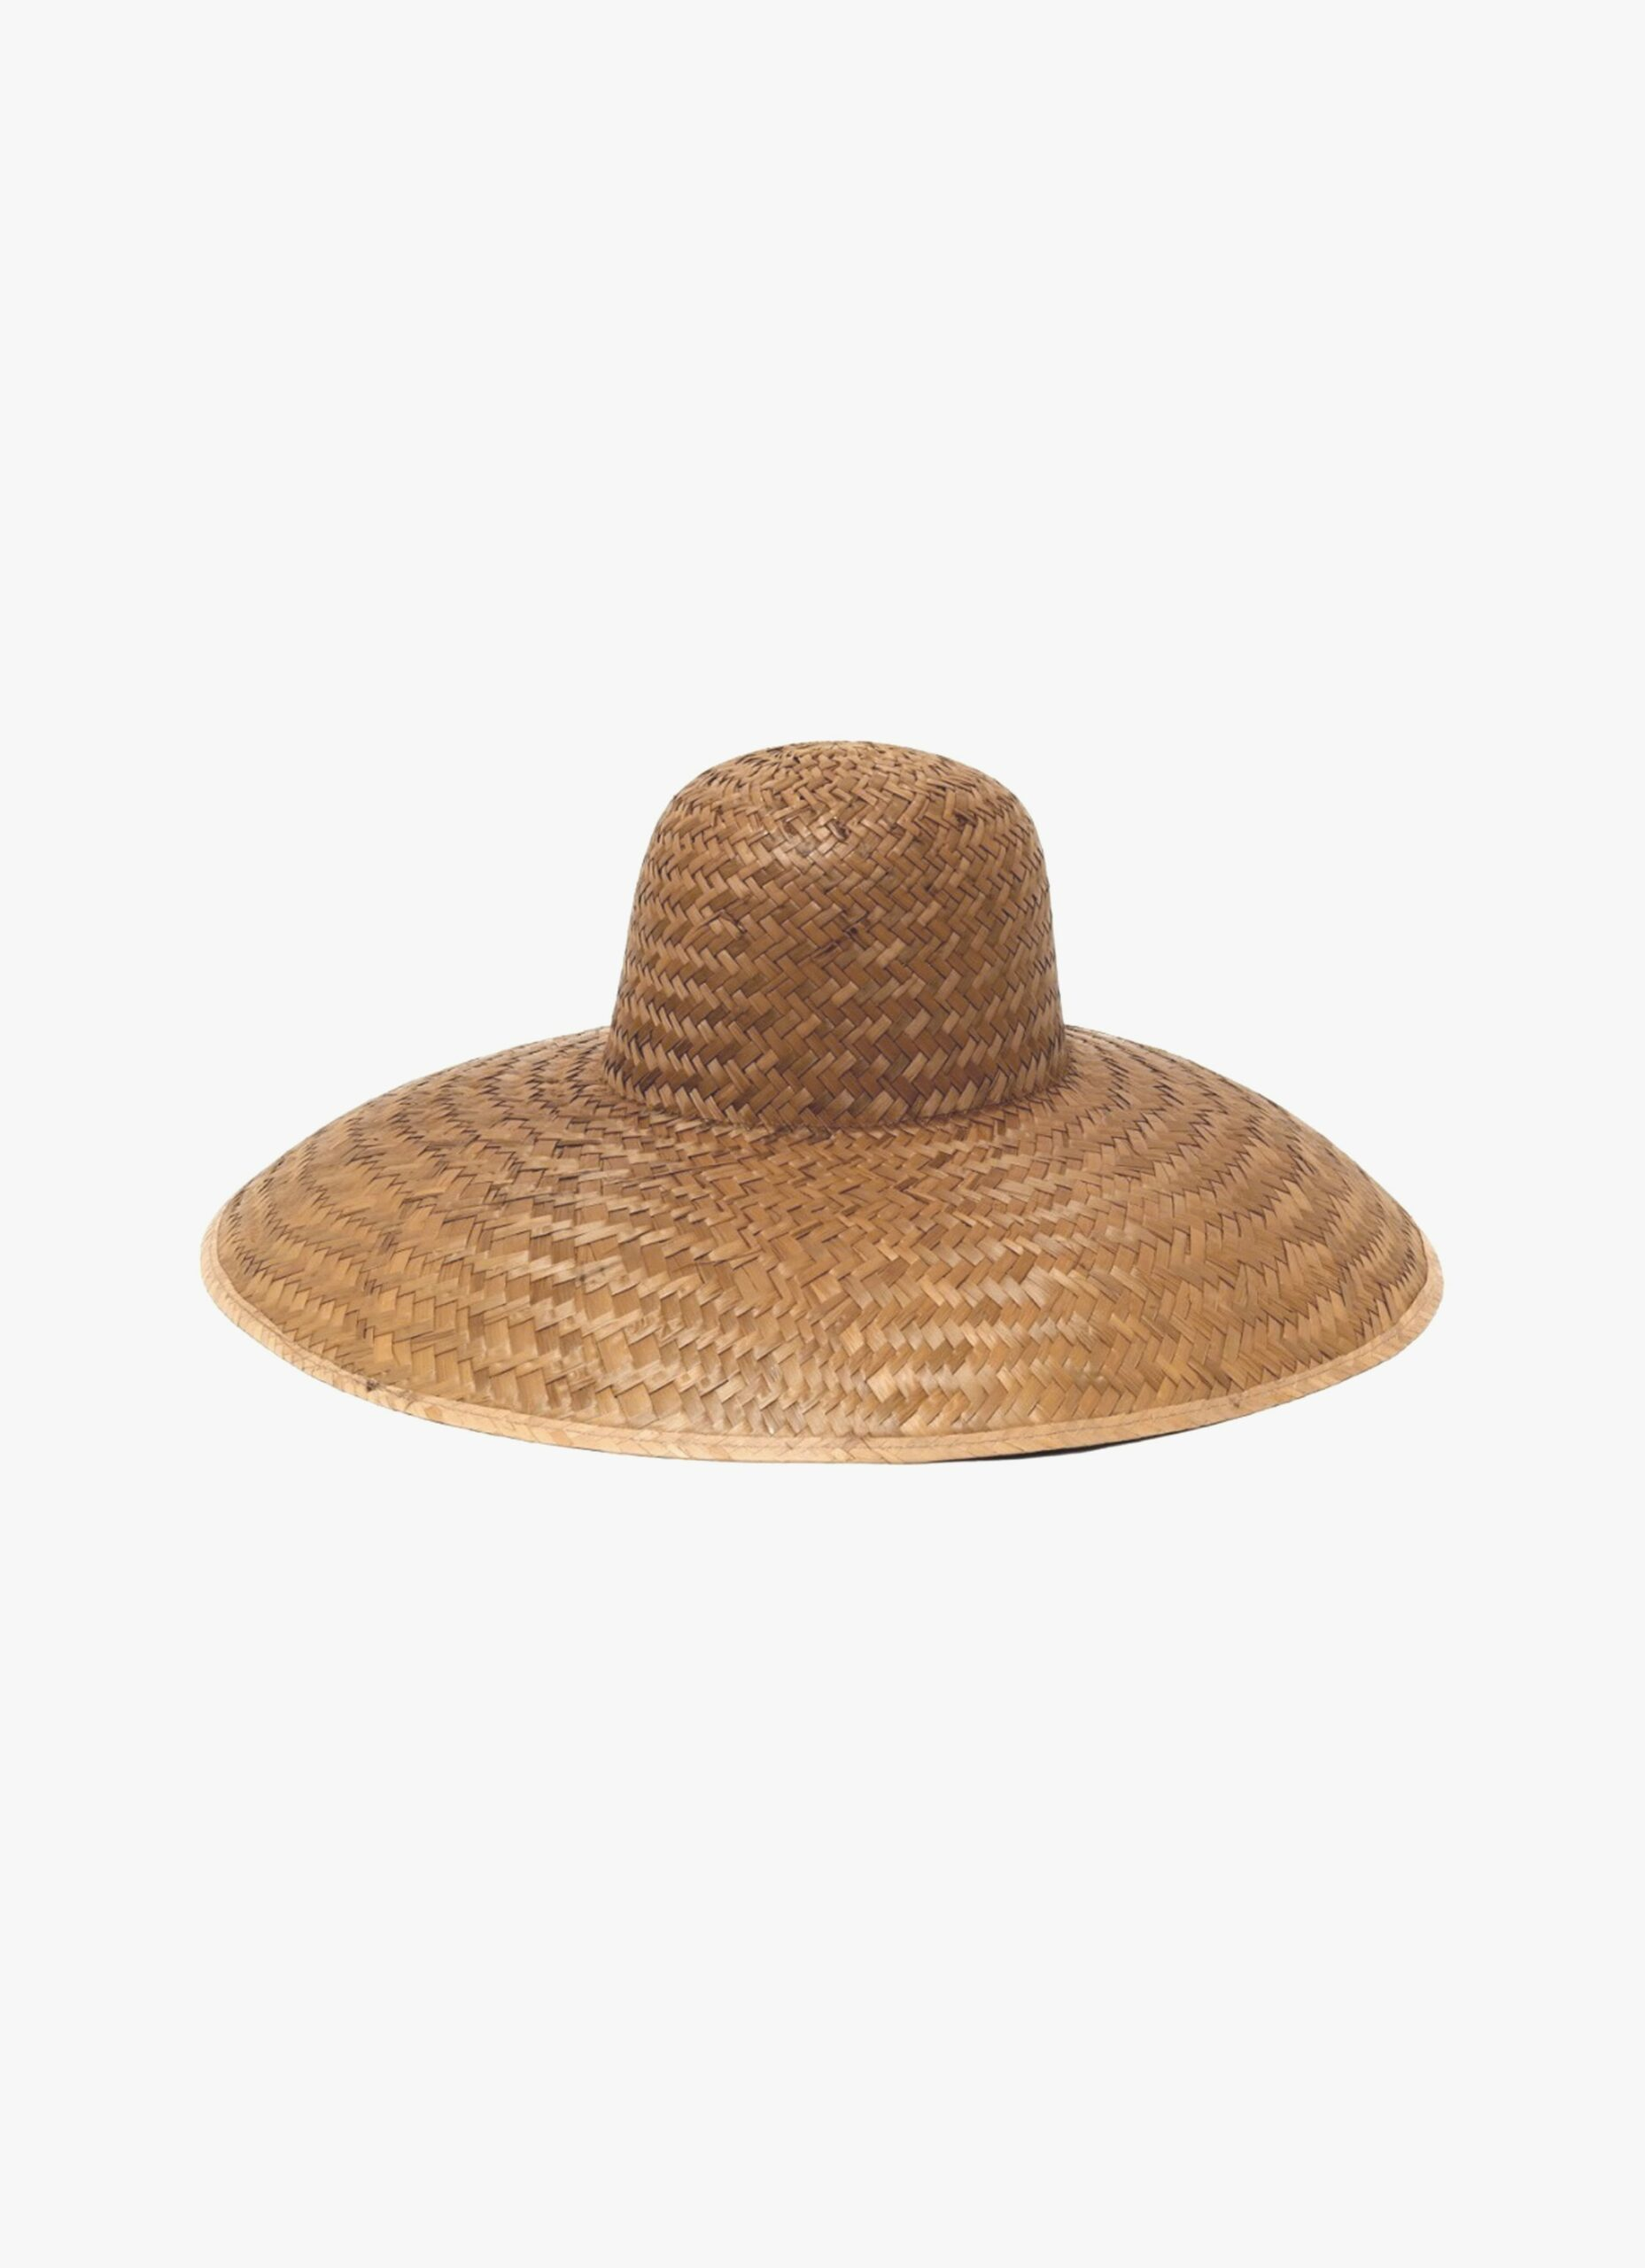 Communitie Marfa - Surfer Hat - Palm Straw - Cooked